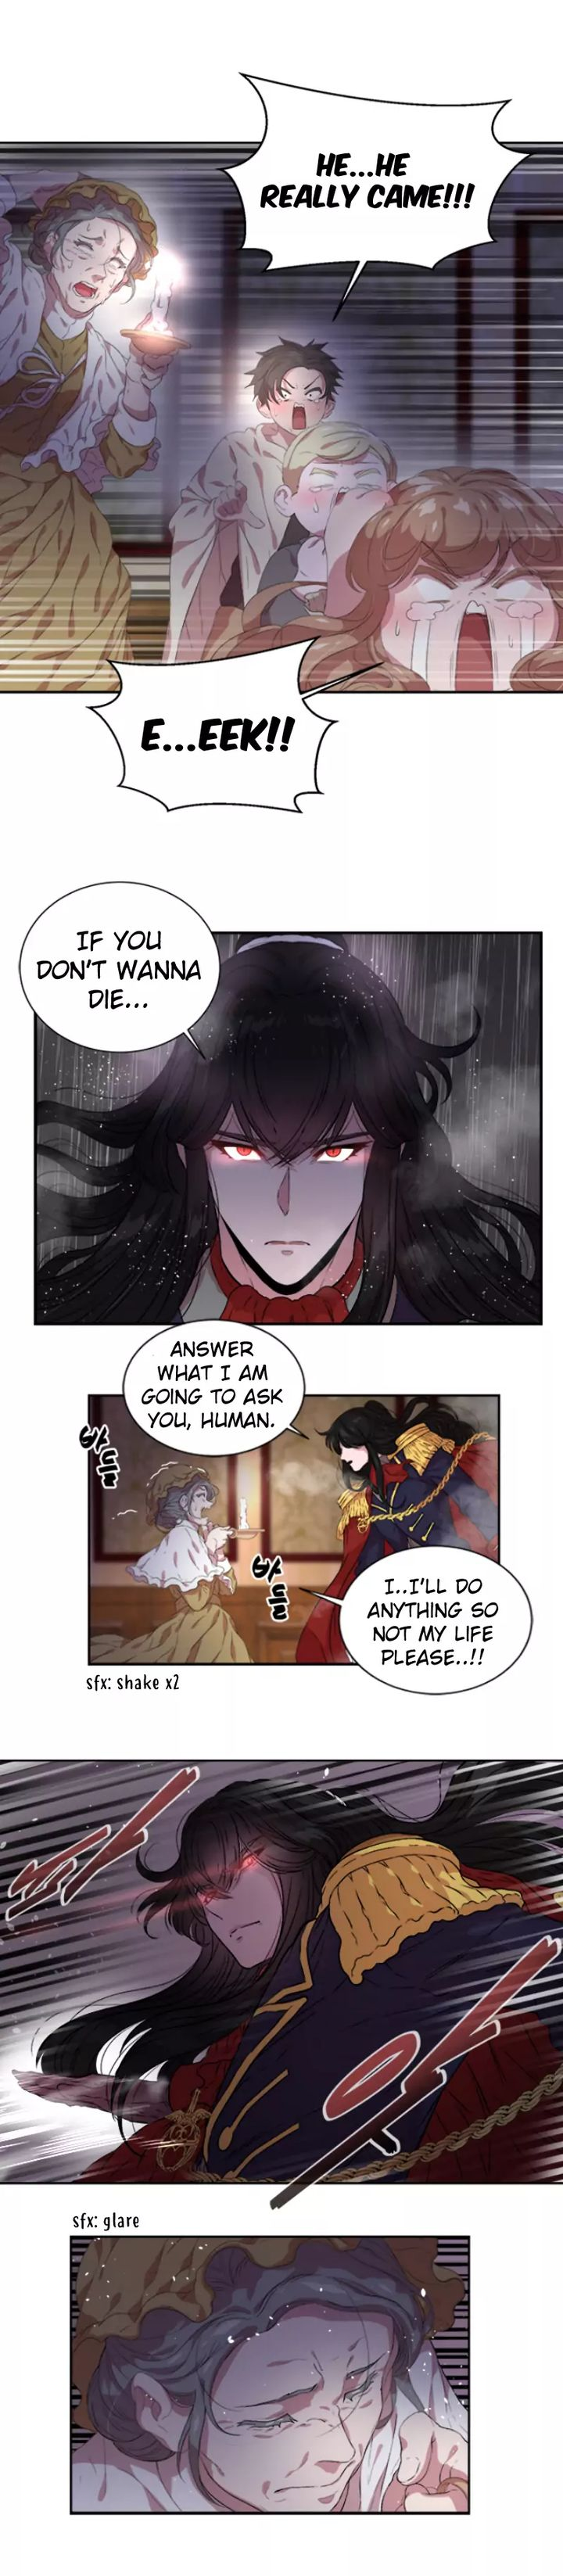 i_was_born_as_the_demon_lords_daughter_1_21